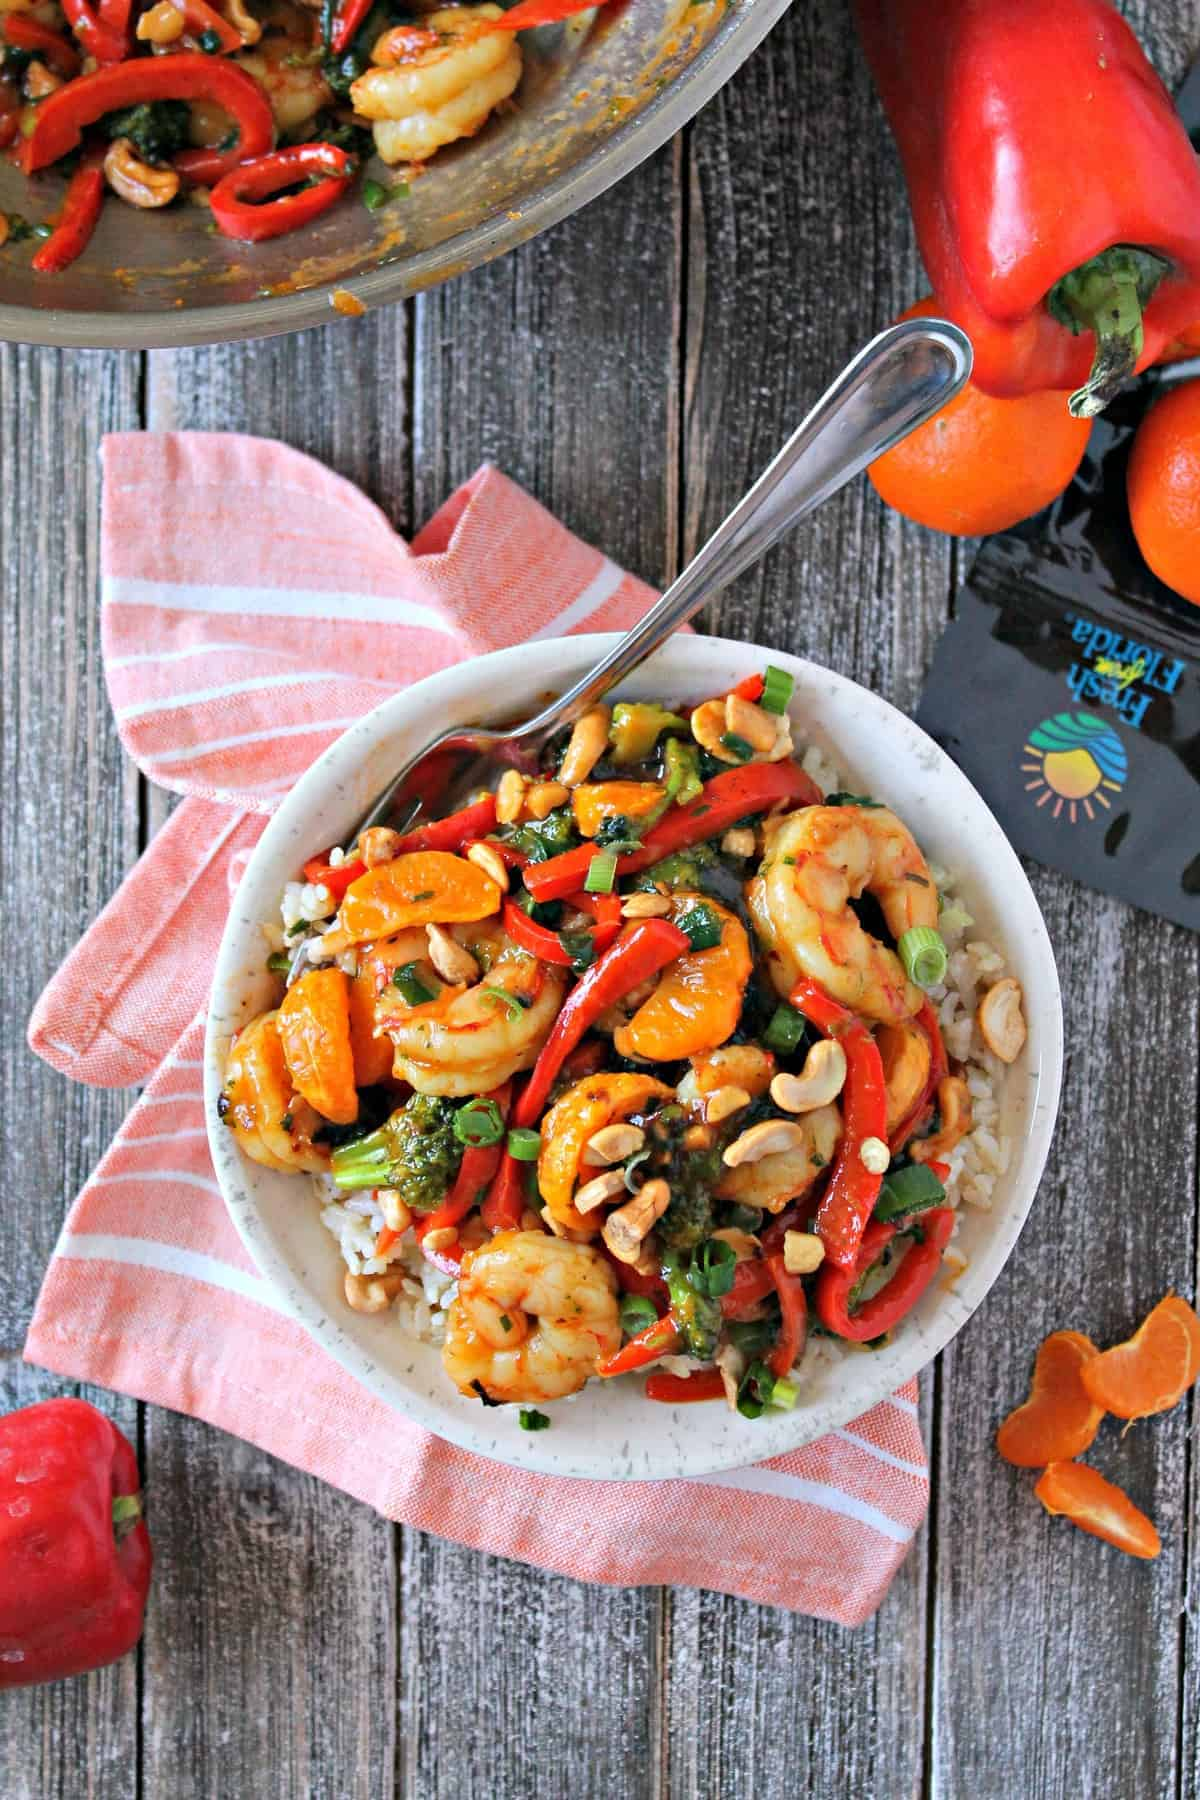 This Asian inspired shrimp and vegetable stir fry is a delicious, fresh, flavorful stir fry dish that's colorful and packed with delicious veggies